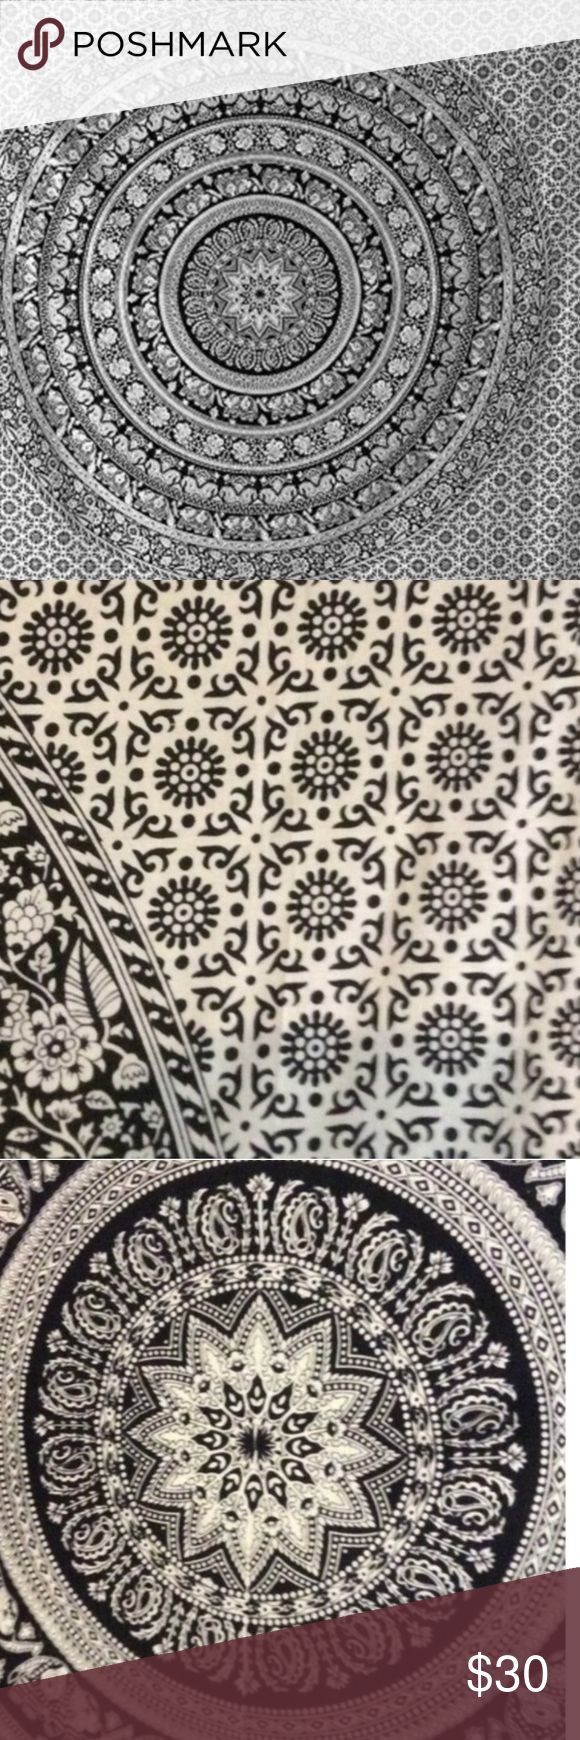 Large Black and white mandala tapestry As seen in american outfitters, this generic tapestry is a multipurpose use piece of art . Use for a day at the beach, picnic, bed spread, curtain, furniture cover, outdoor decoration, wall decoration etc. 100% cotton , hand made in india. Approximate size of queen bed sheet. Medium size also available at $20 happy poshing Urban Outfitters Accessories